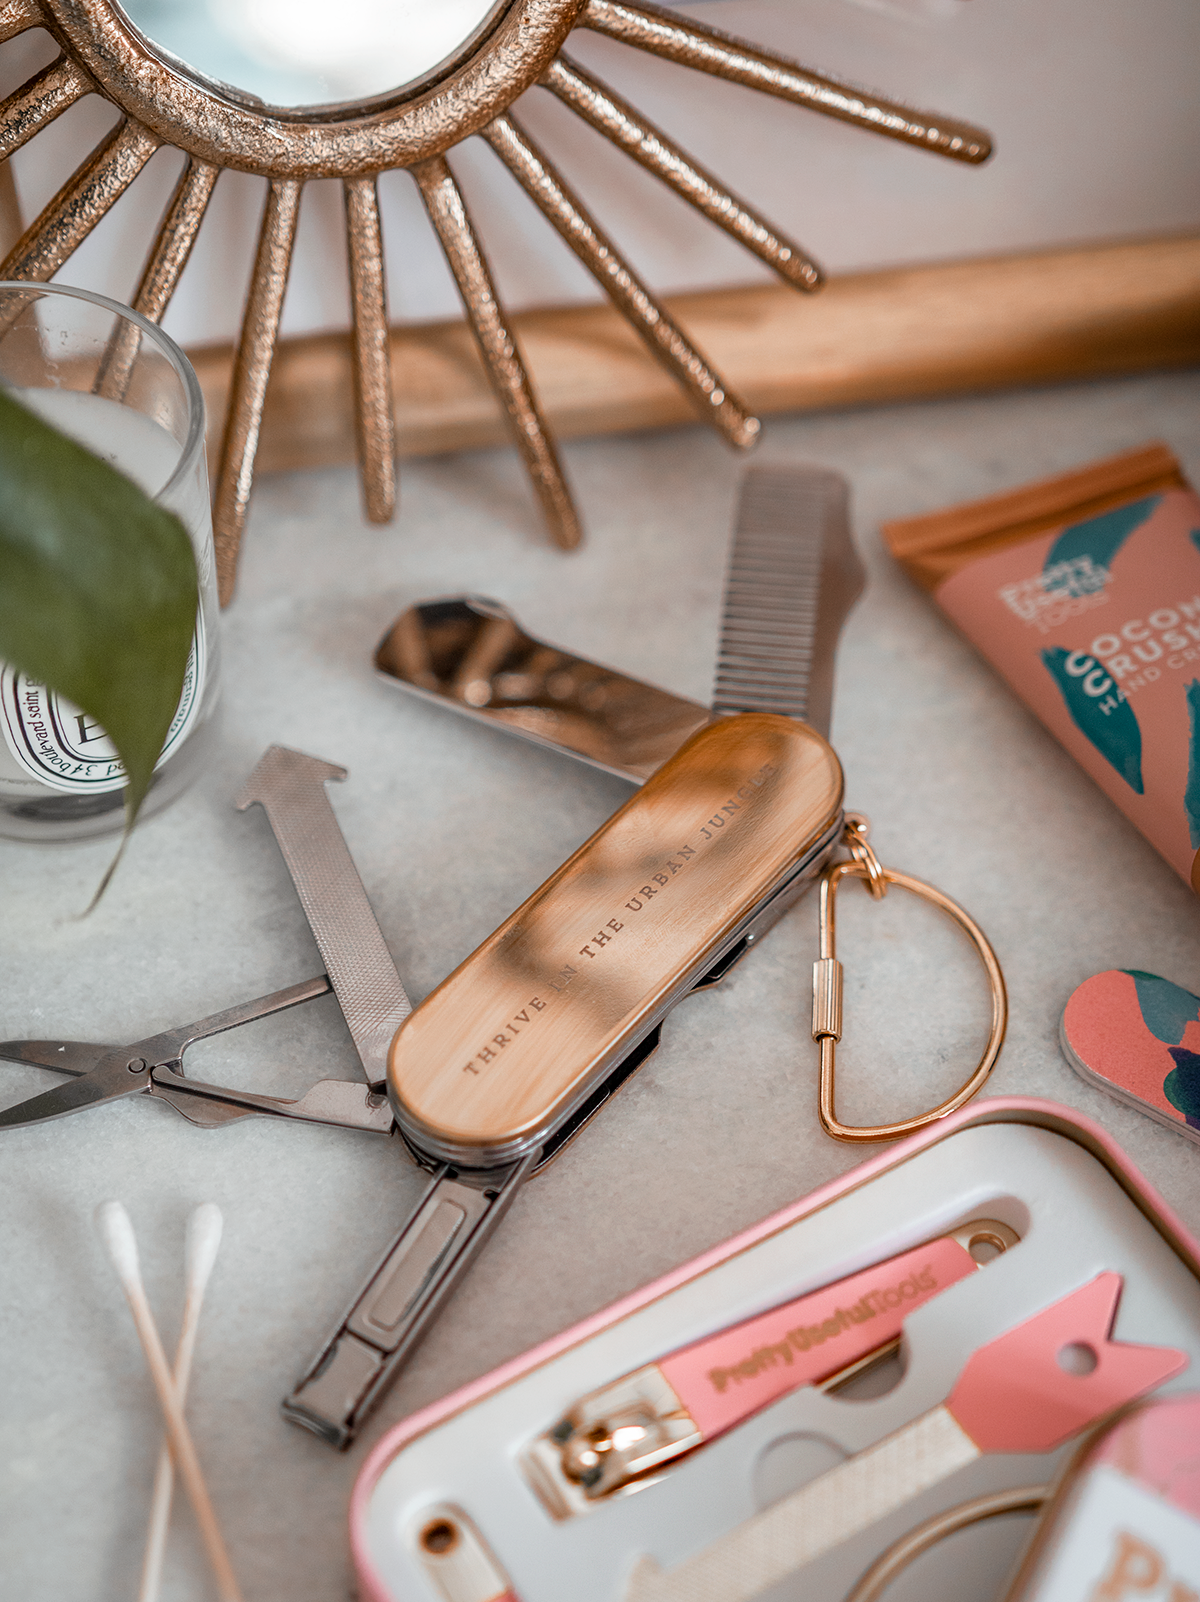 Mother's Day Gifts With Pretty Useful Tools